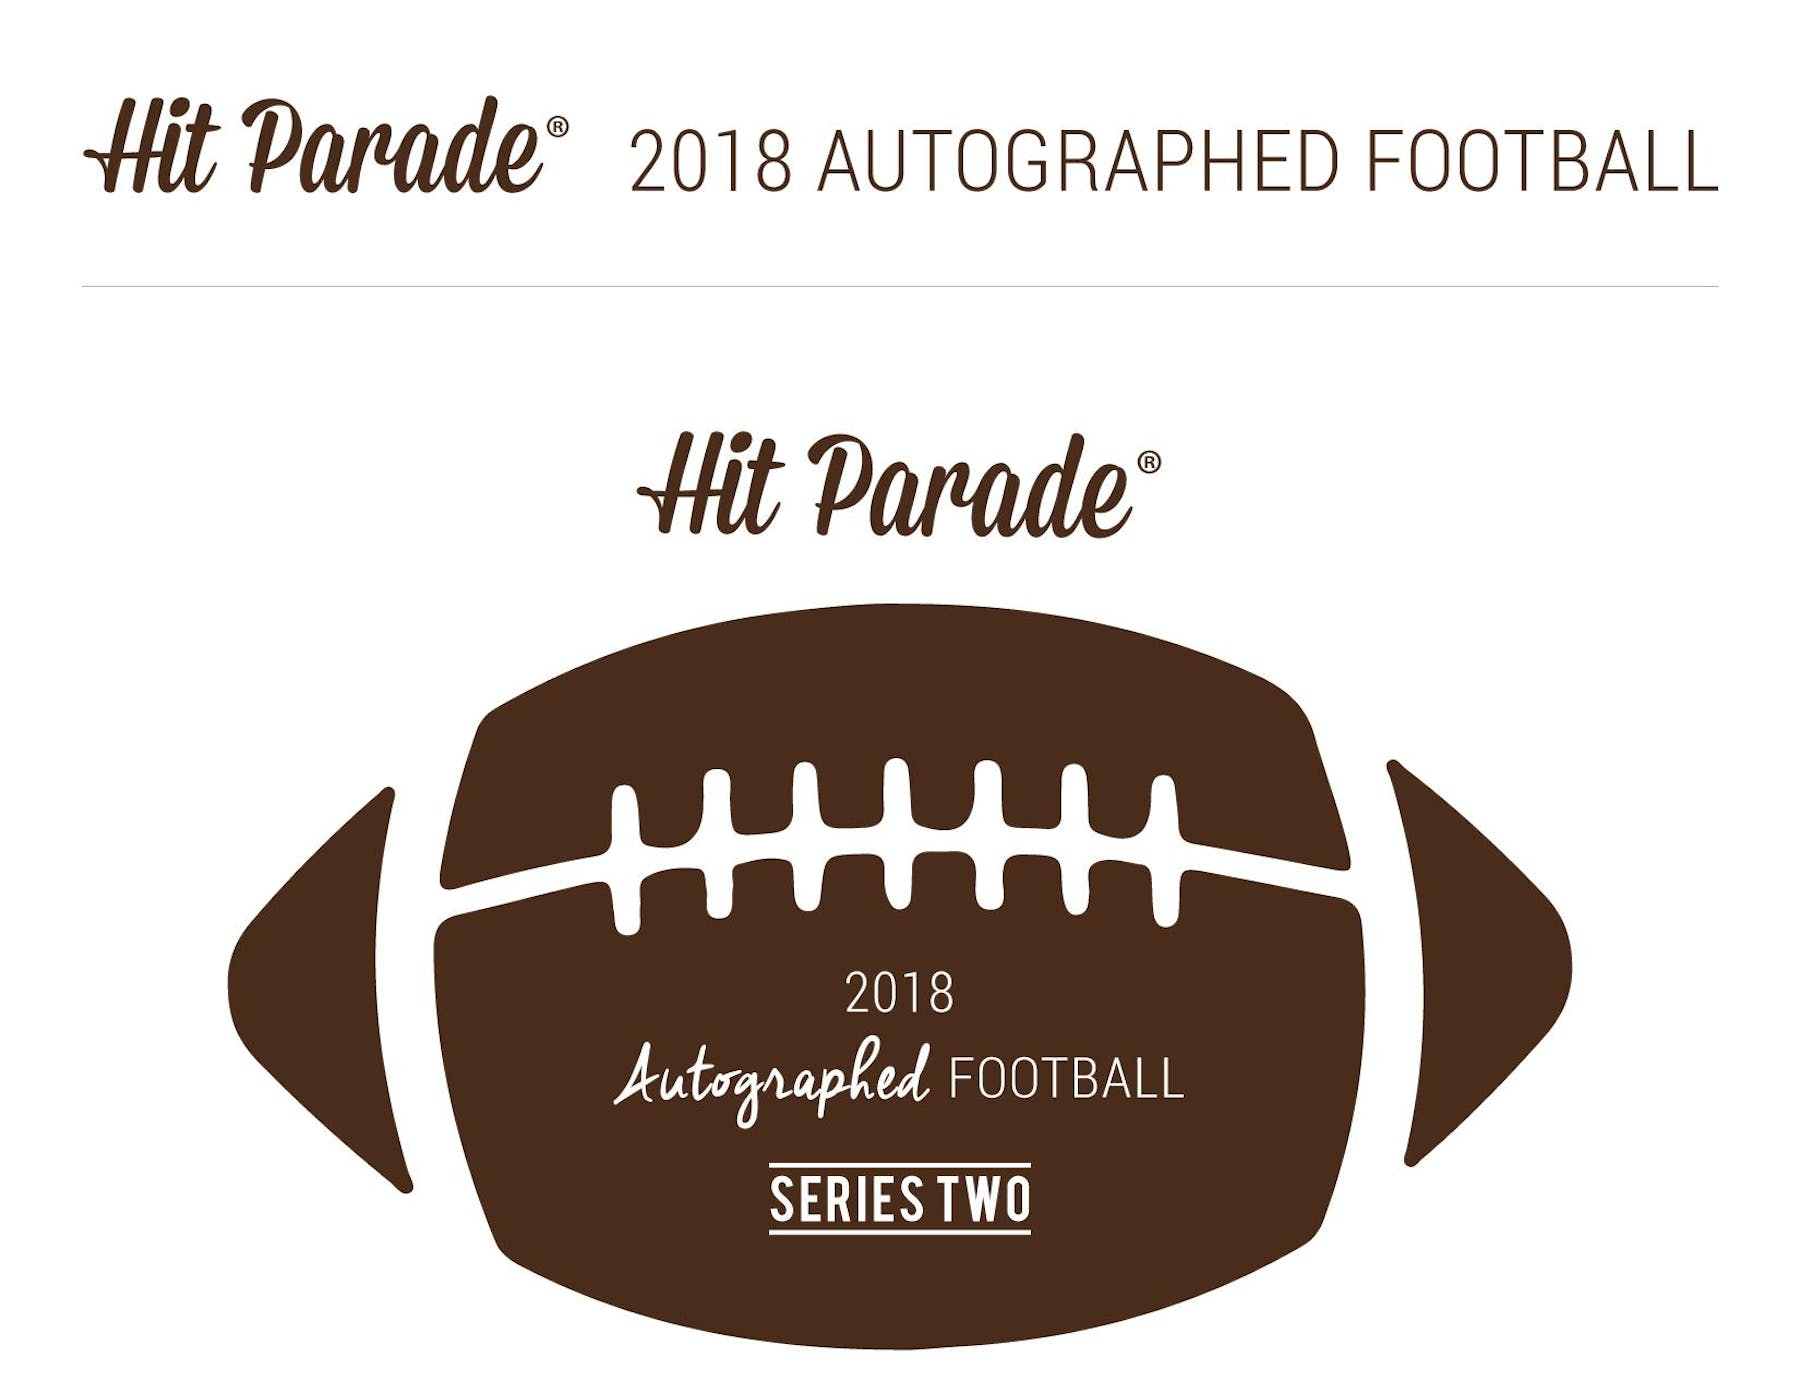 2bded57ed 2018 Hit Parade Autographed Football Hobby Box - Series 2 - Aaron ...